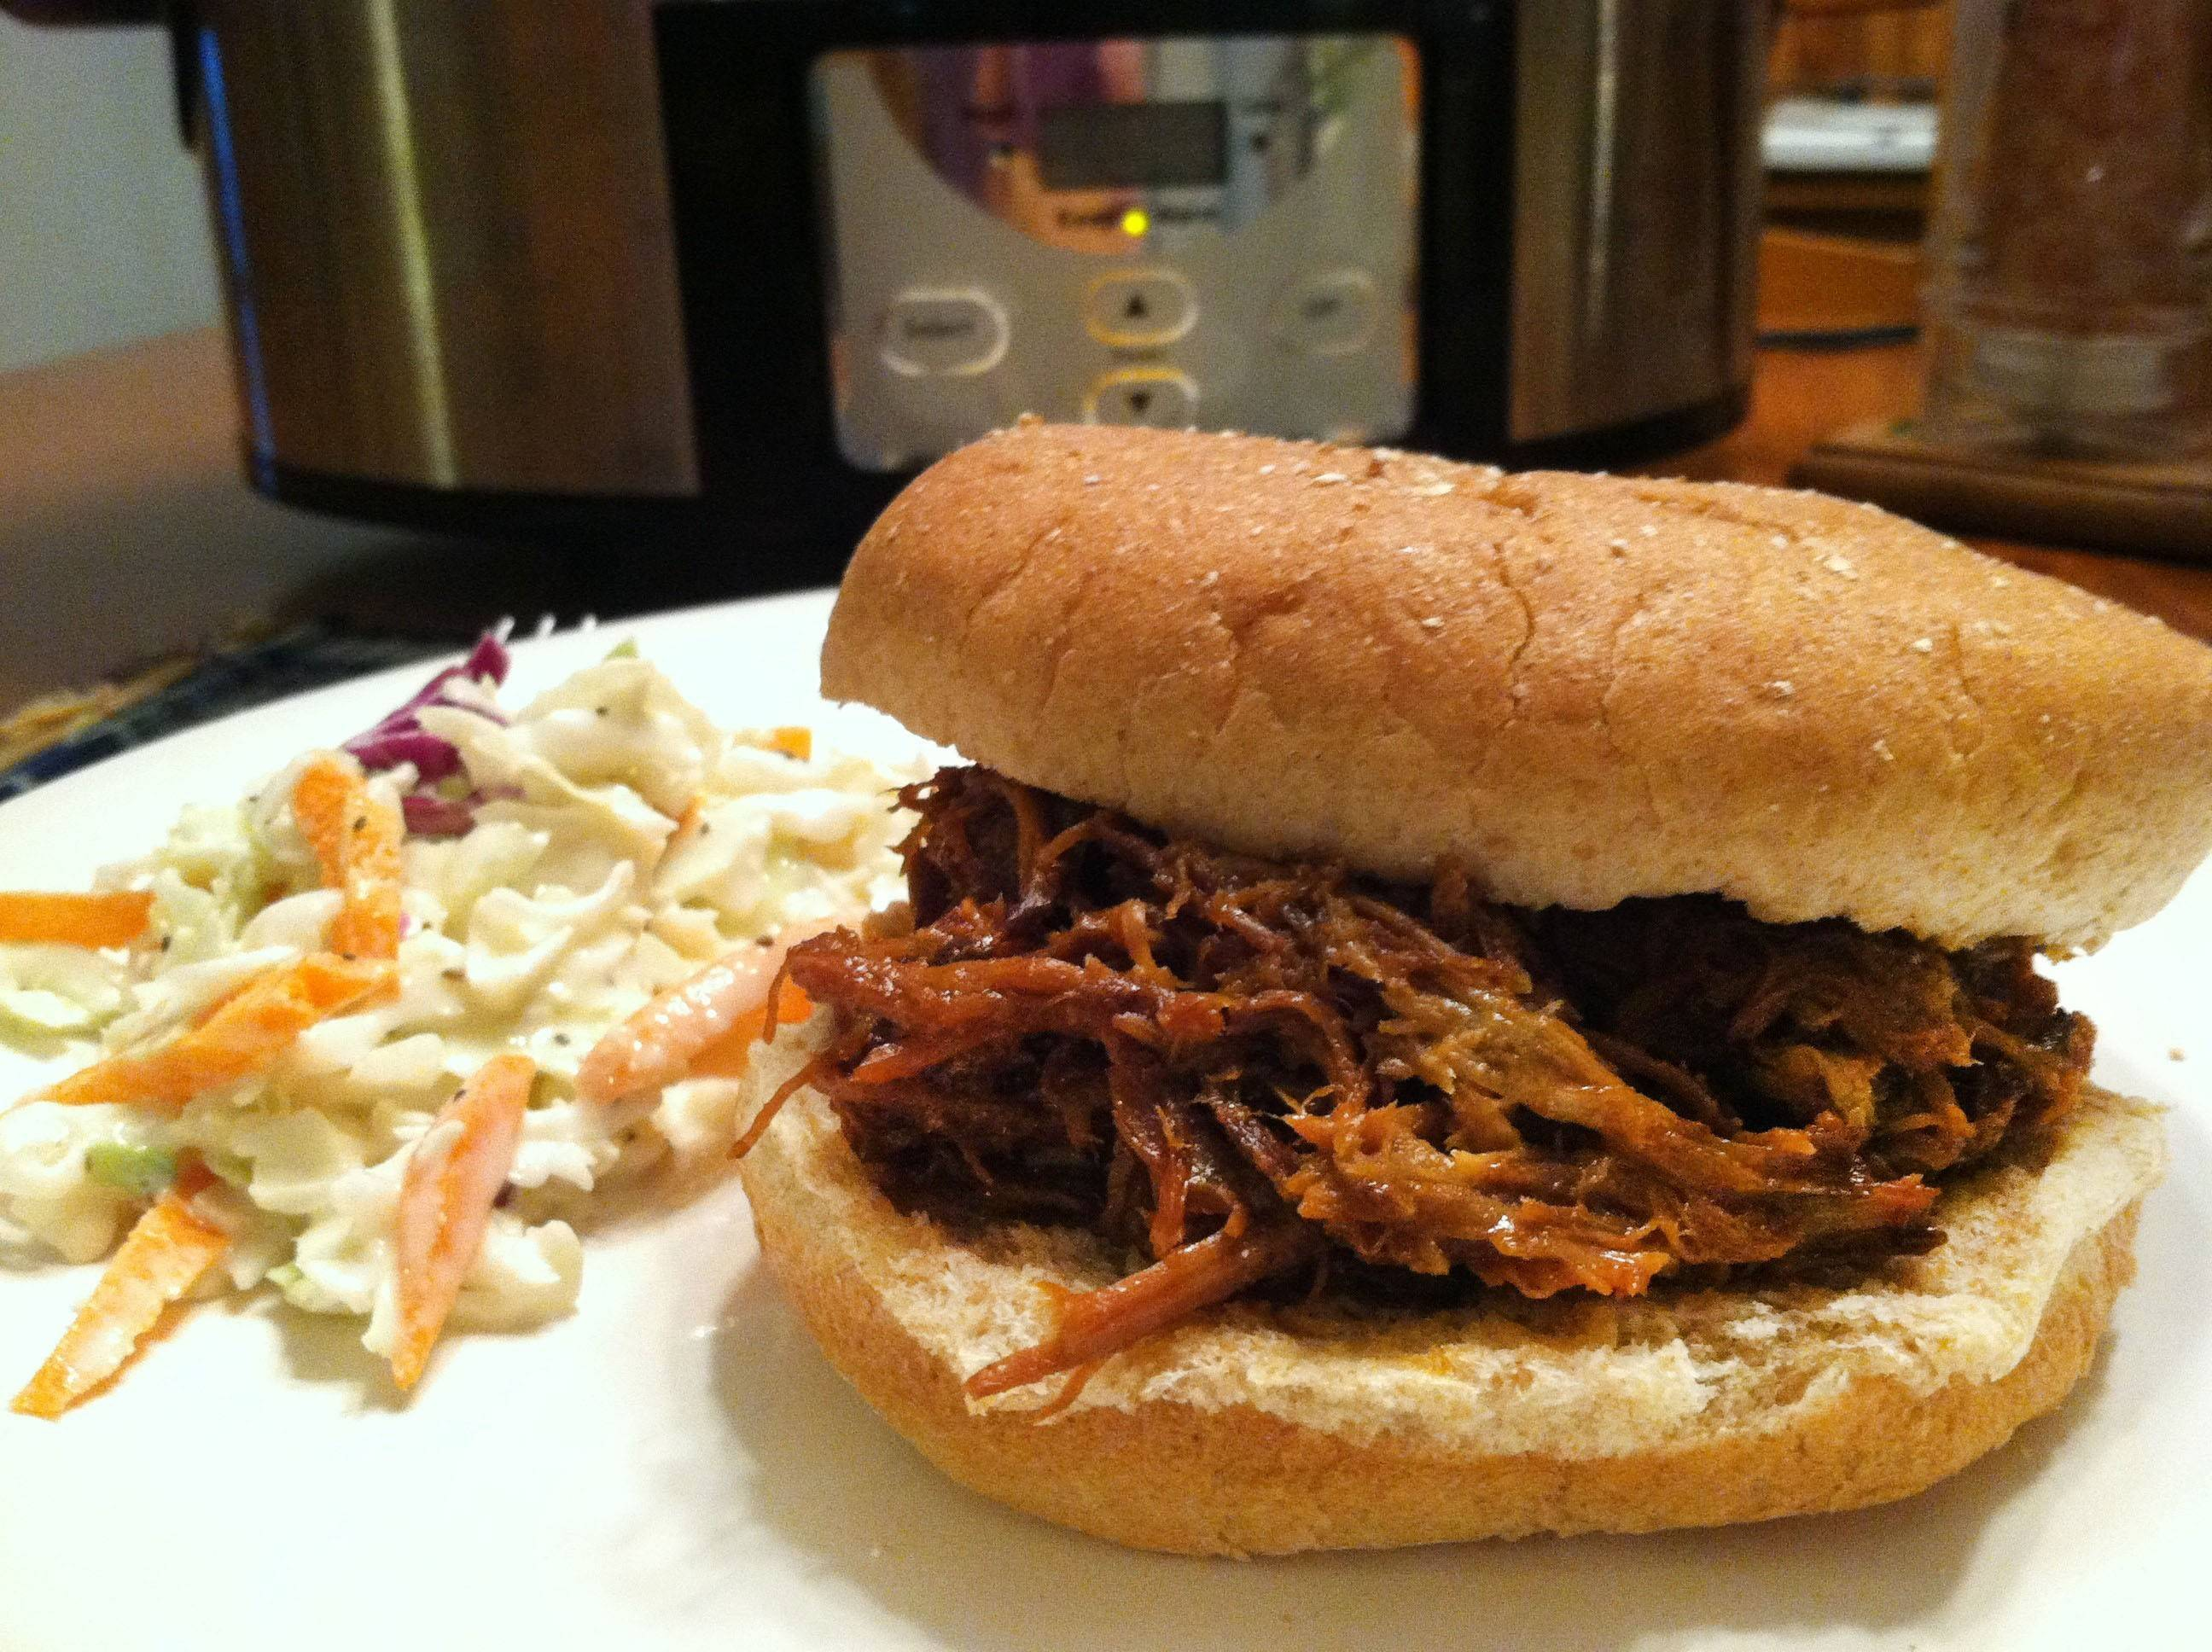 Pulled pork is easy, tasty and economical; what could be better than that?